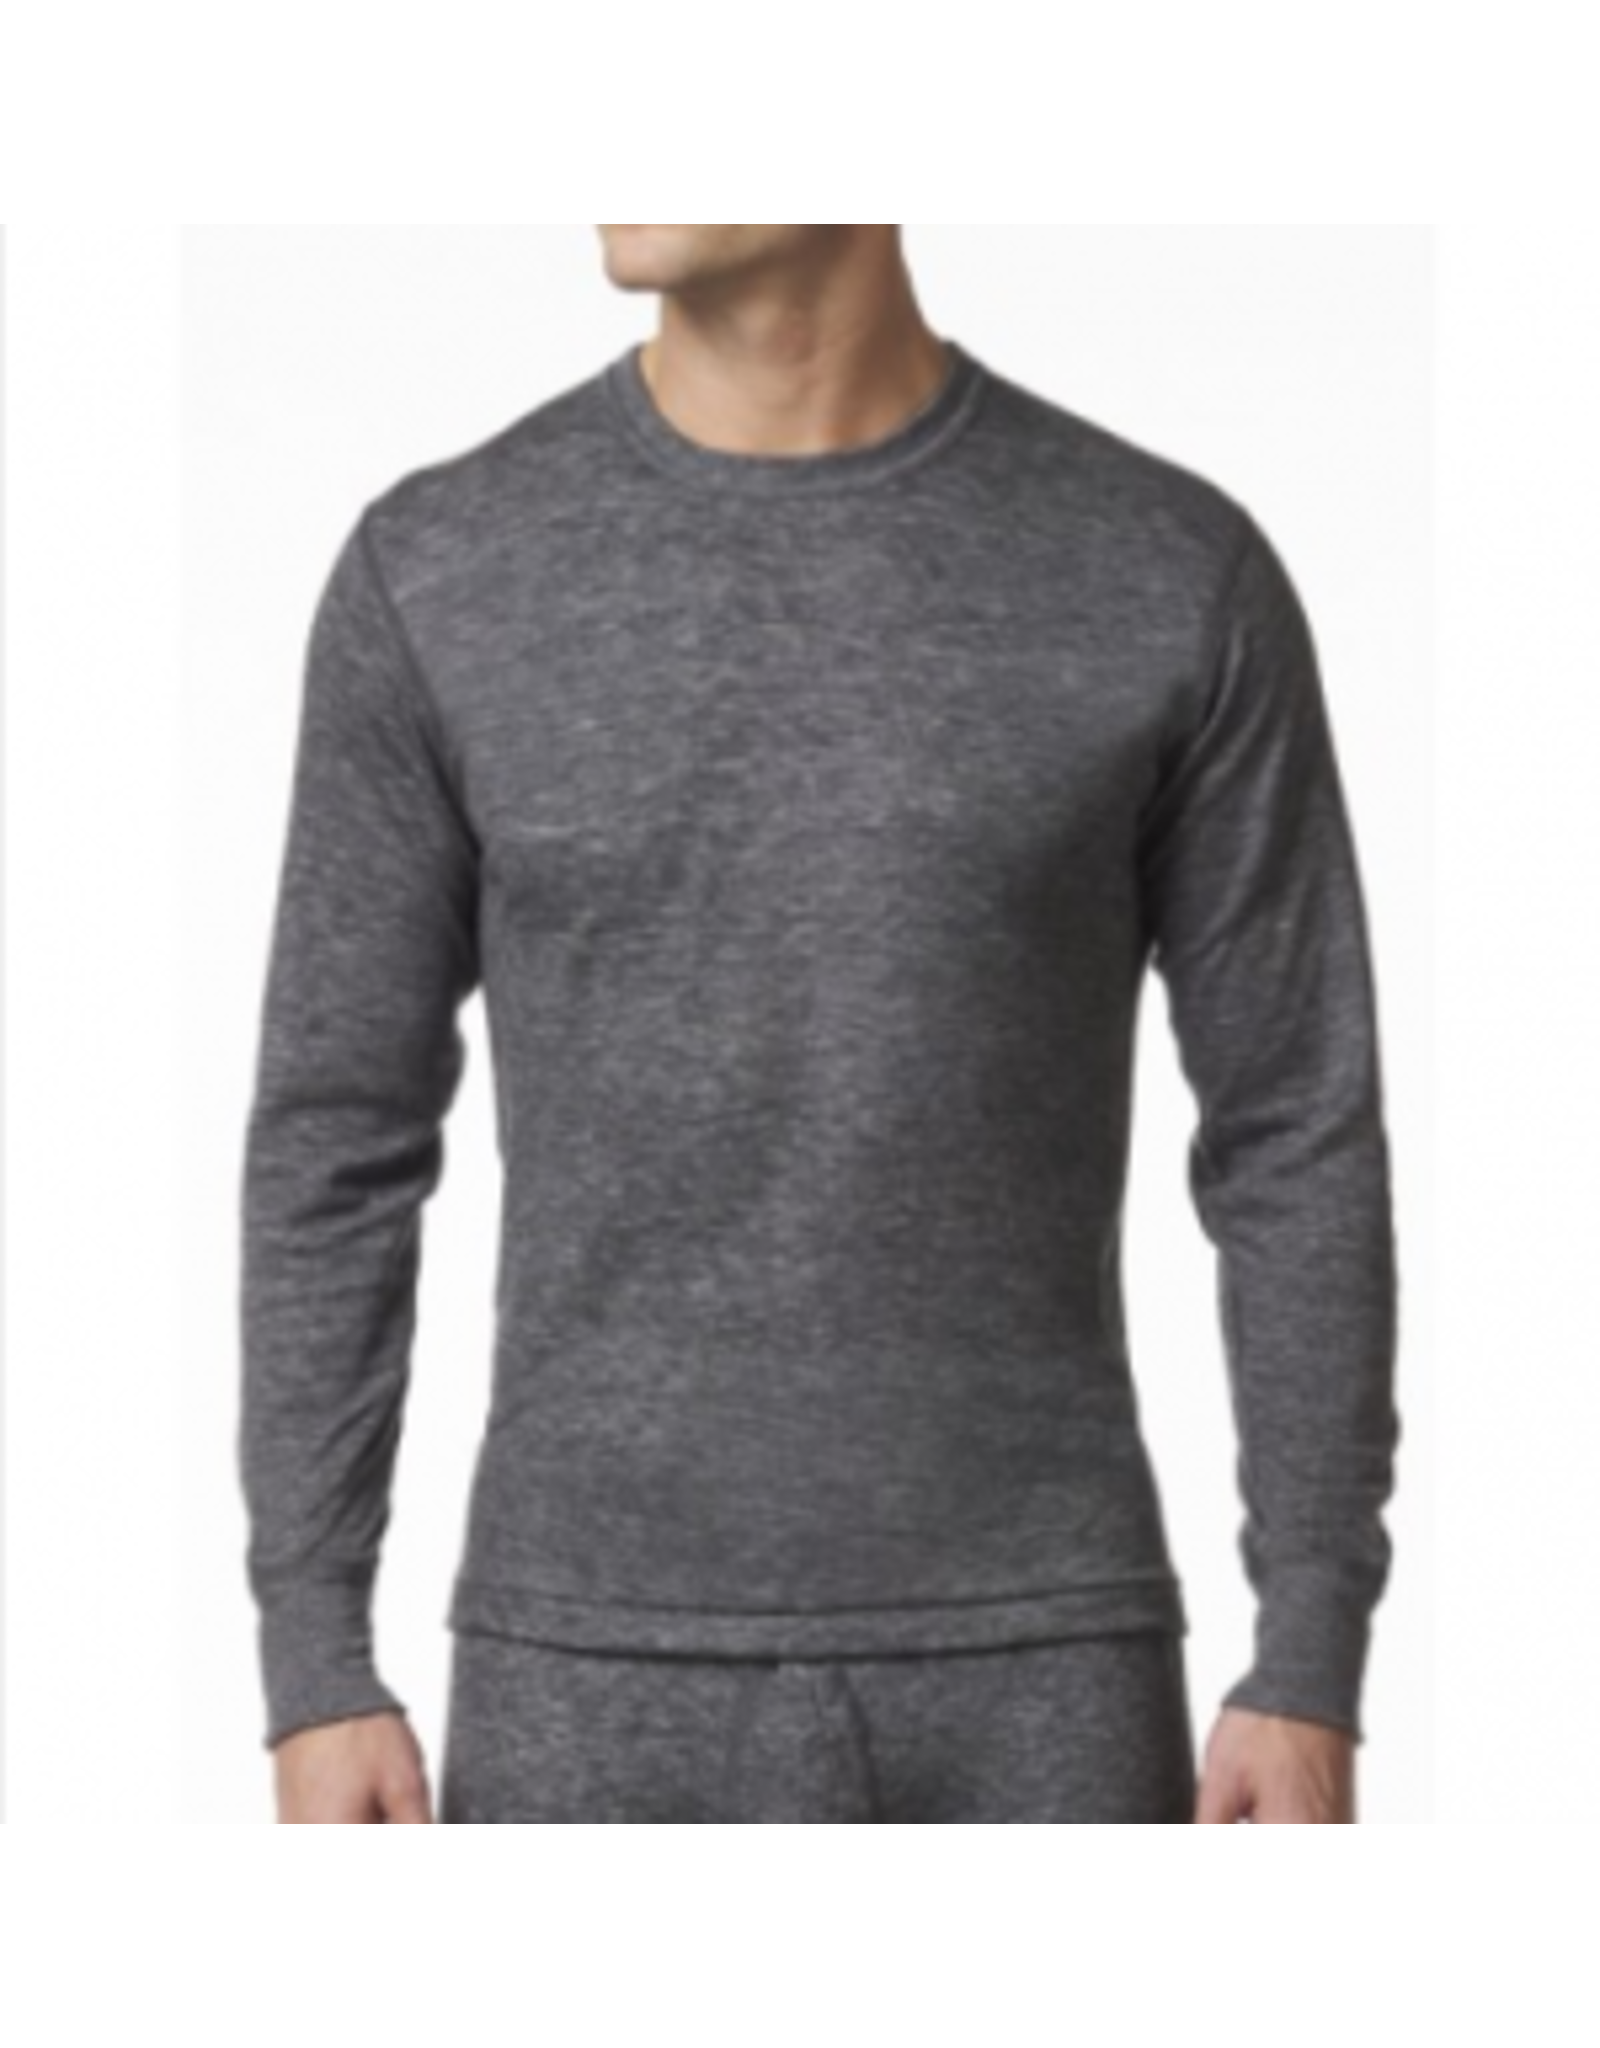 STANFIELDS 2 LAYER MERINO WOOL TOPS